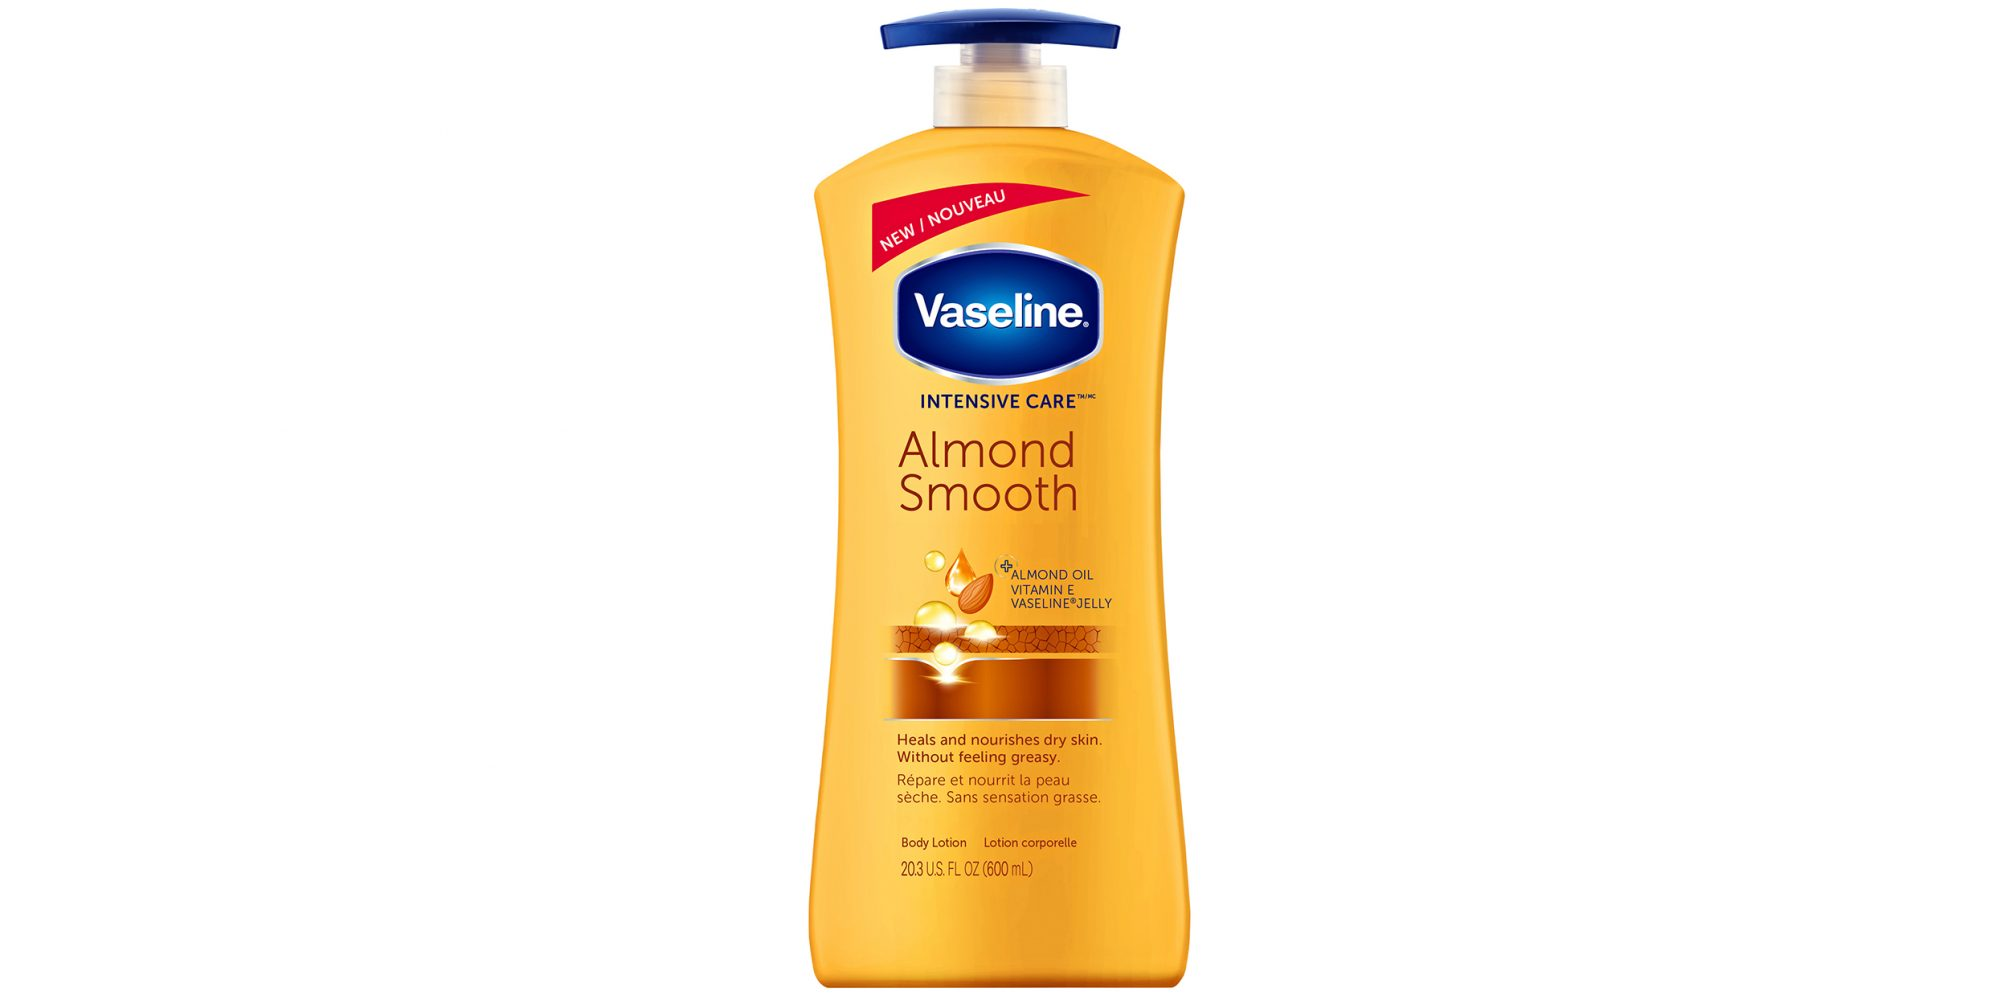 Vaseline Intensive Care Almond Smooth Body Lotion